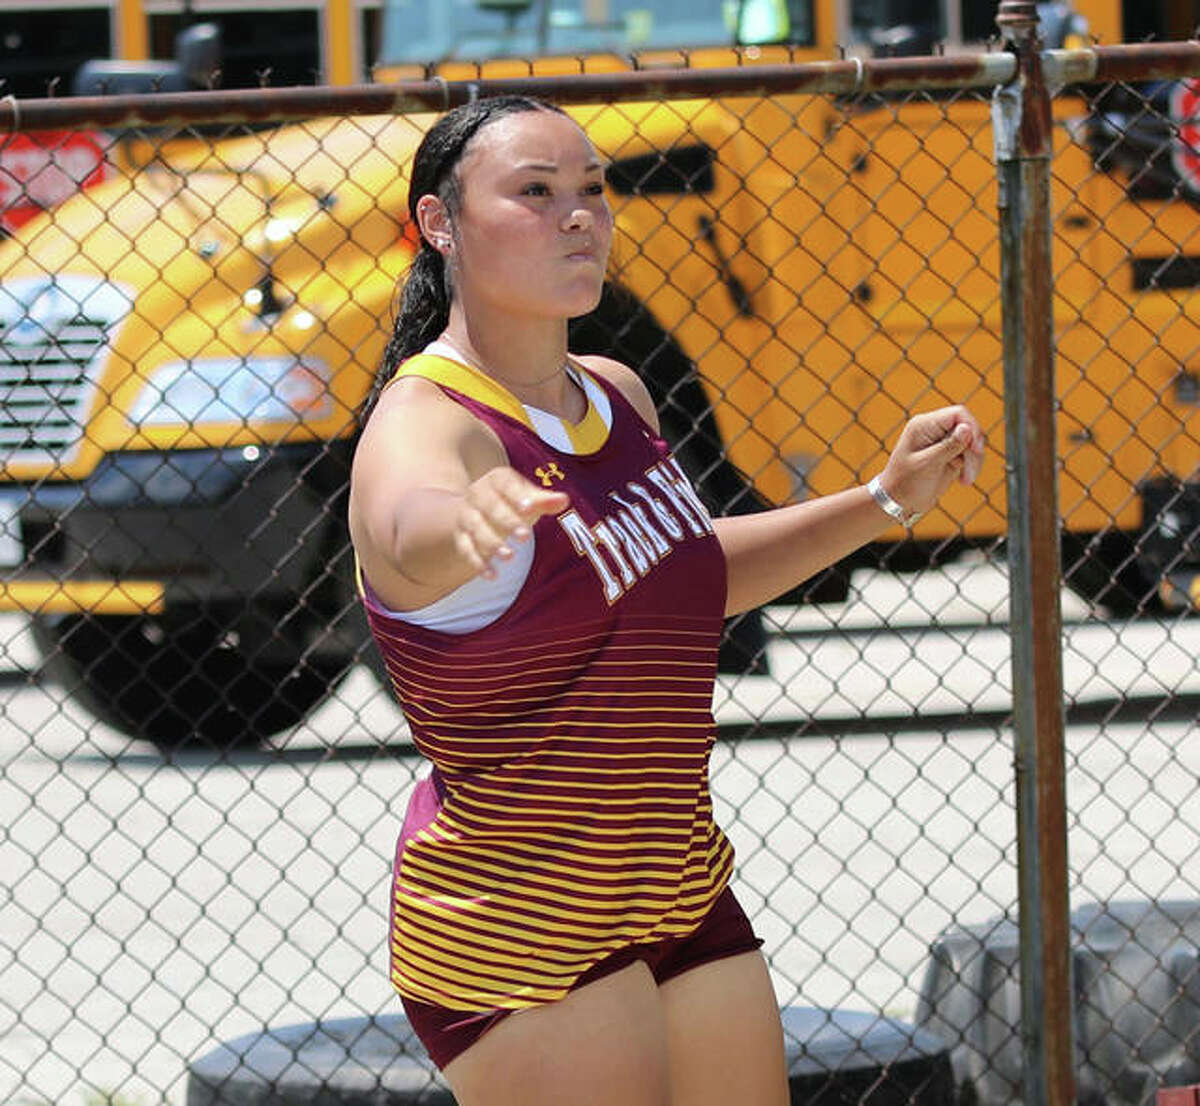 EA-WR senior Jayden Ulrich watches her throw in the shot put at the EA-WR Class 2A Sectional last Friday in Wood River. With state-record throws in both events this season, Ulrich is favored to win state titles in both the shot and discus in Friday's Class 2A state meet in Charleston.